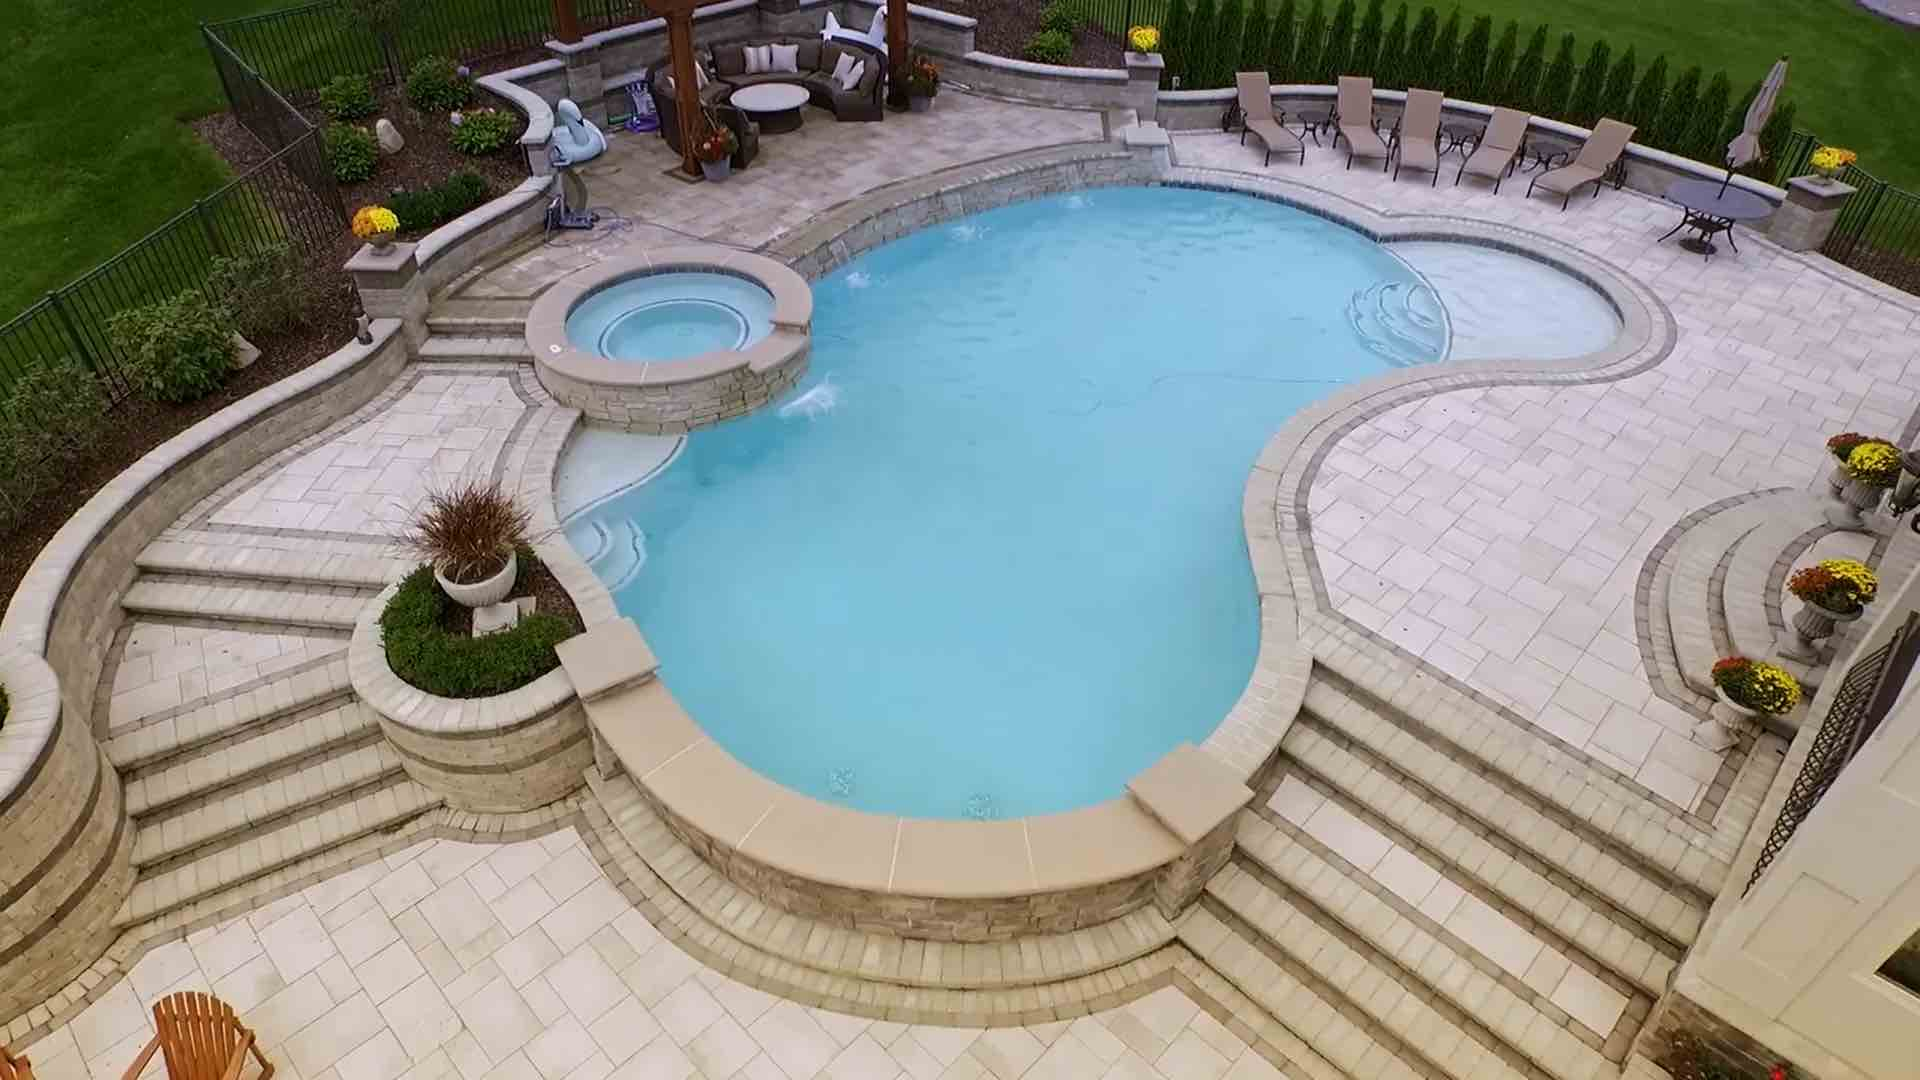 view from above of pool with spillover spa